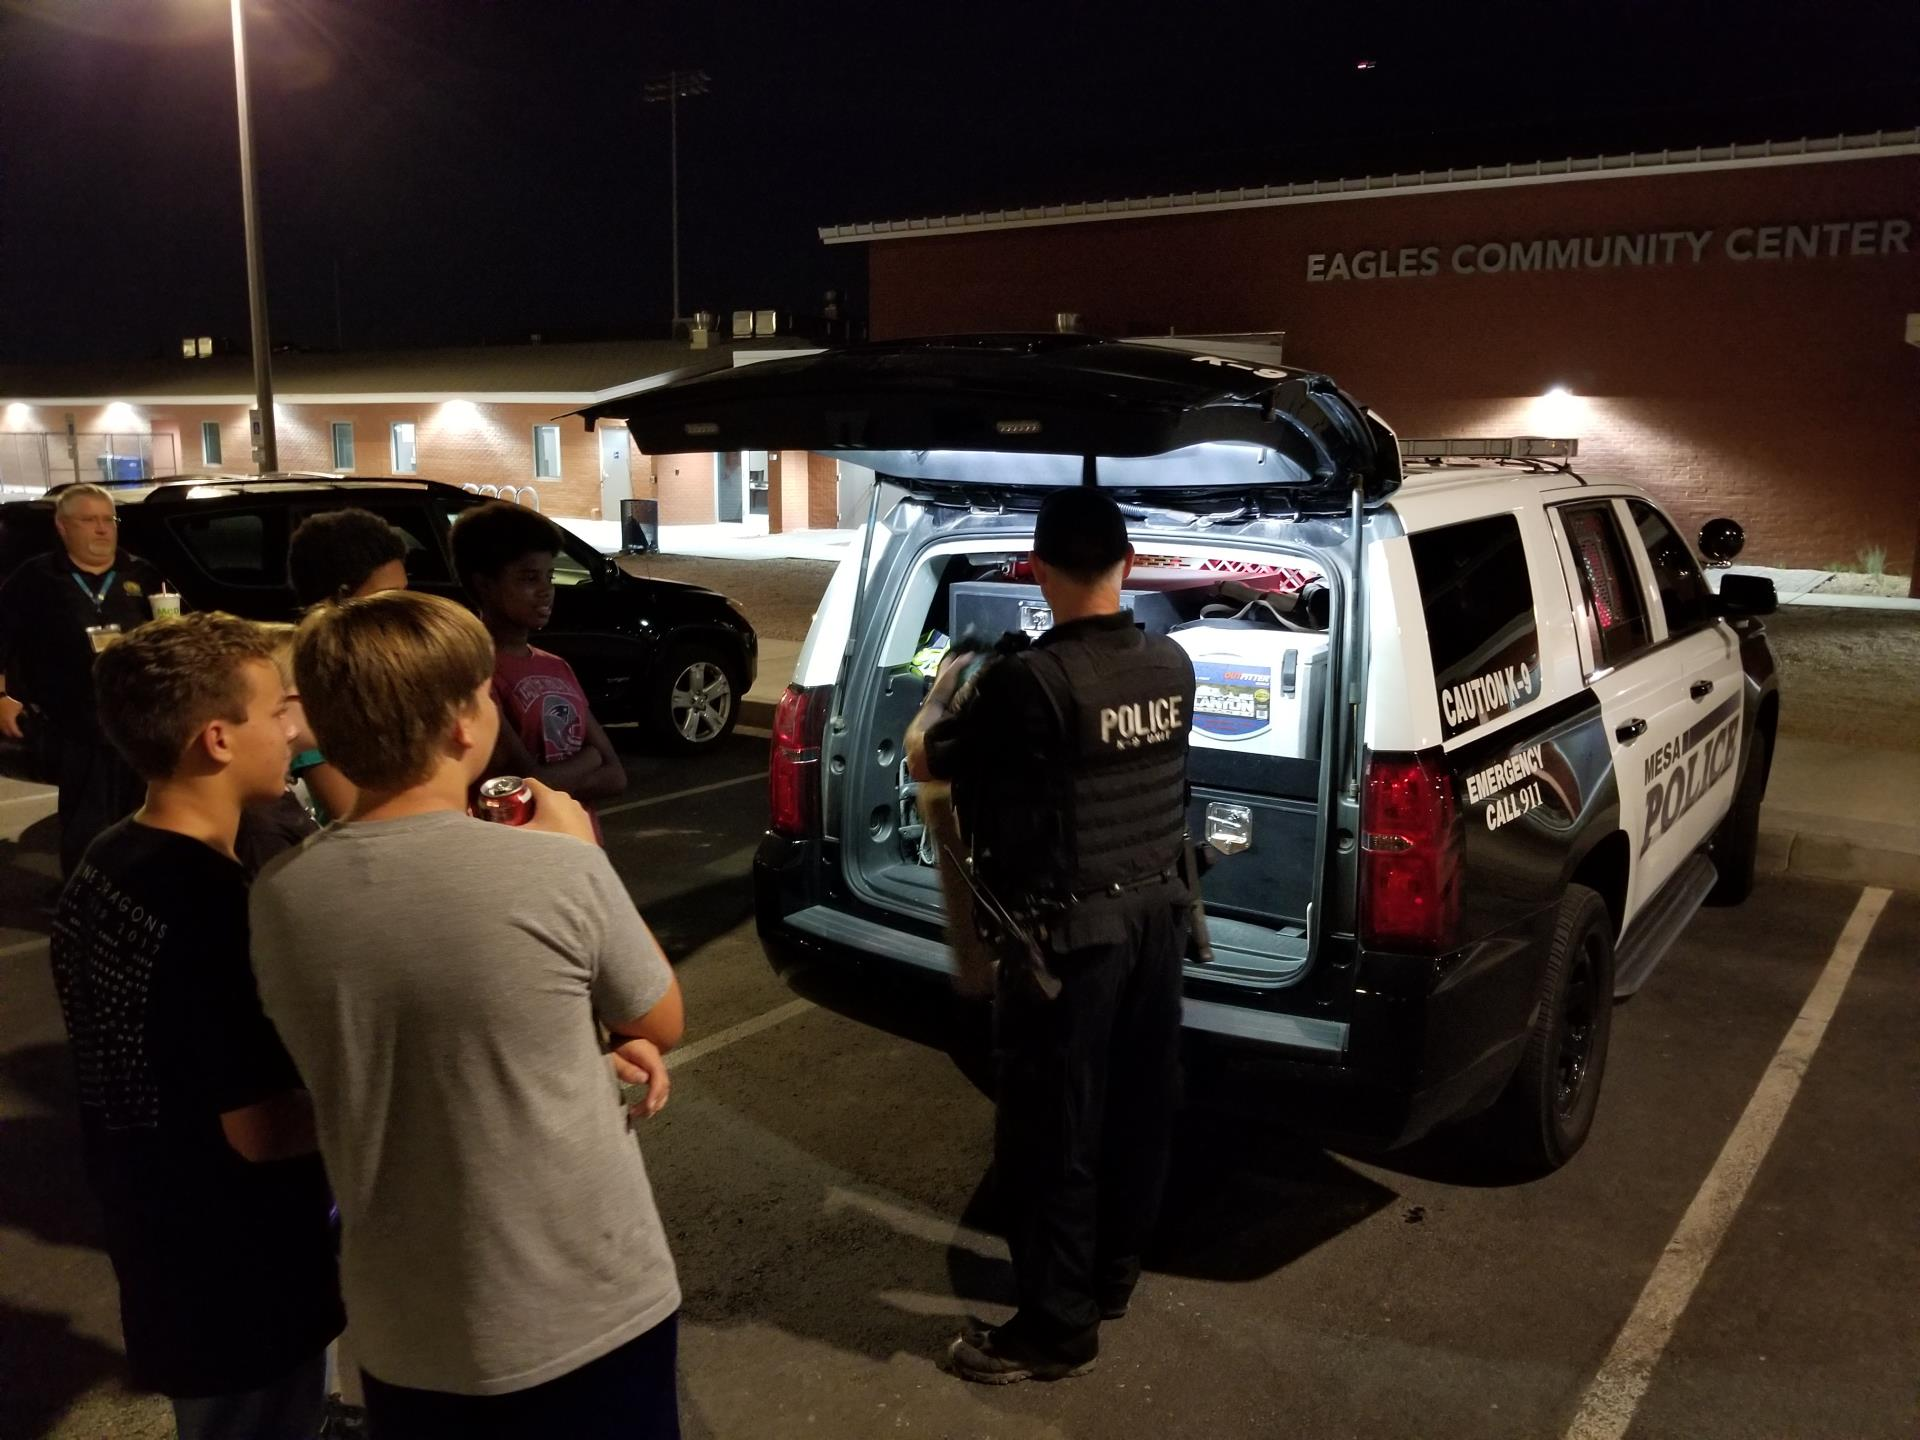 Mesa Police Department K9 Unit visited the Teen PLAE program at Eagles Community Center - unloading vehicle